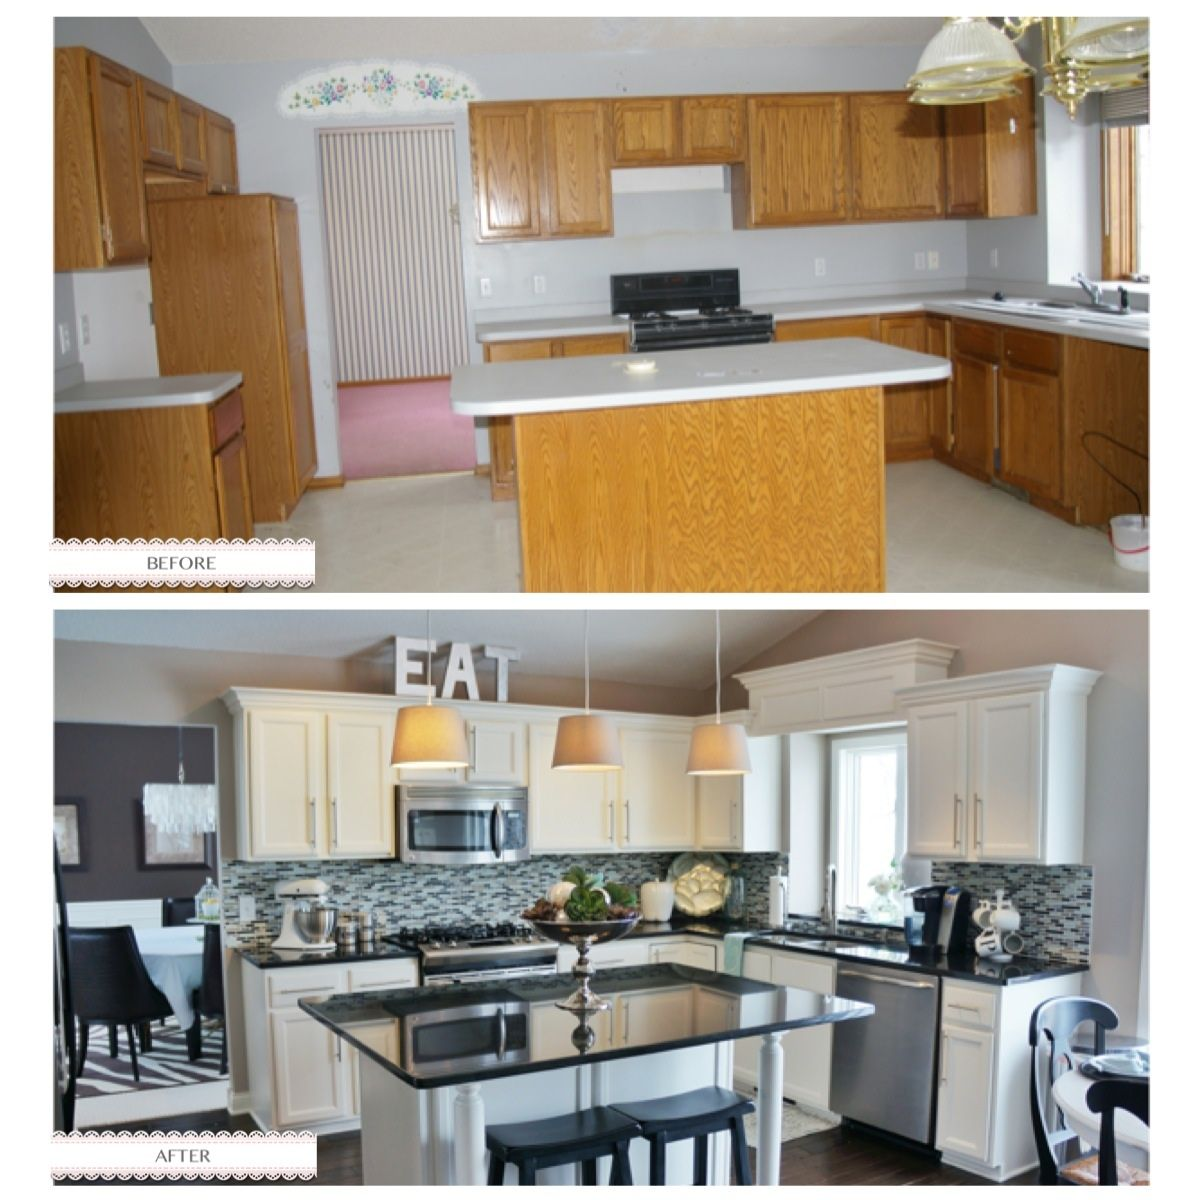 "Remodel Kitchen Before And After 90's kitchen makeover not a huge fan of the ""eat"" sign of the"